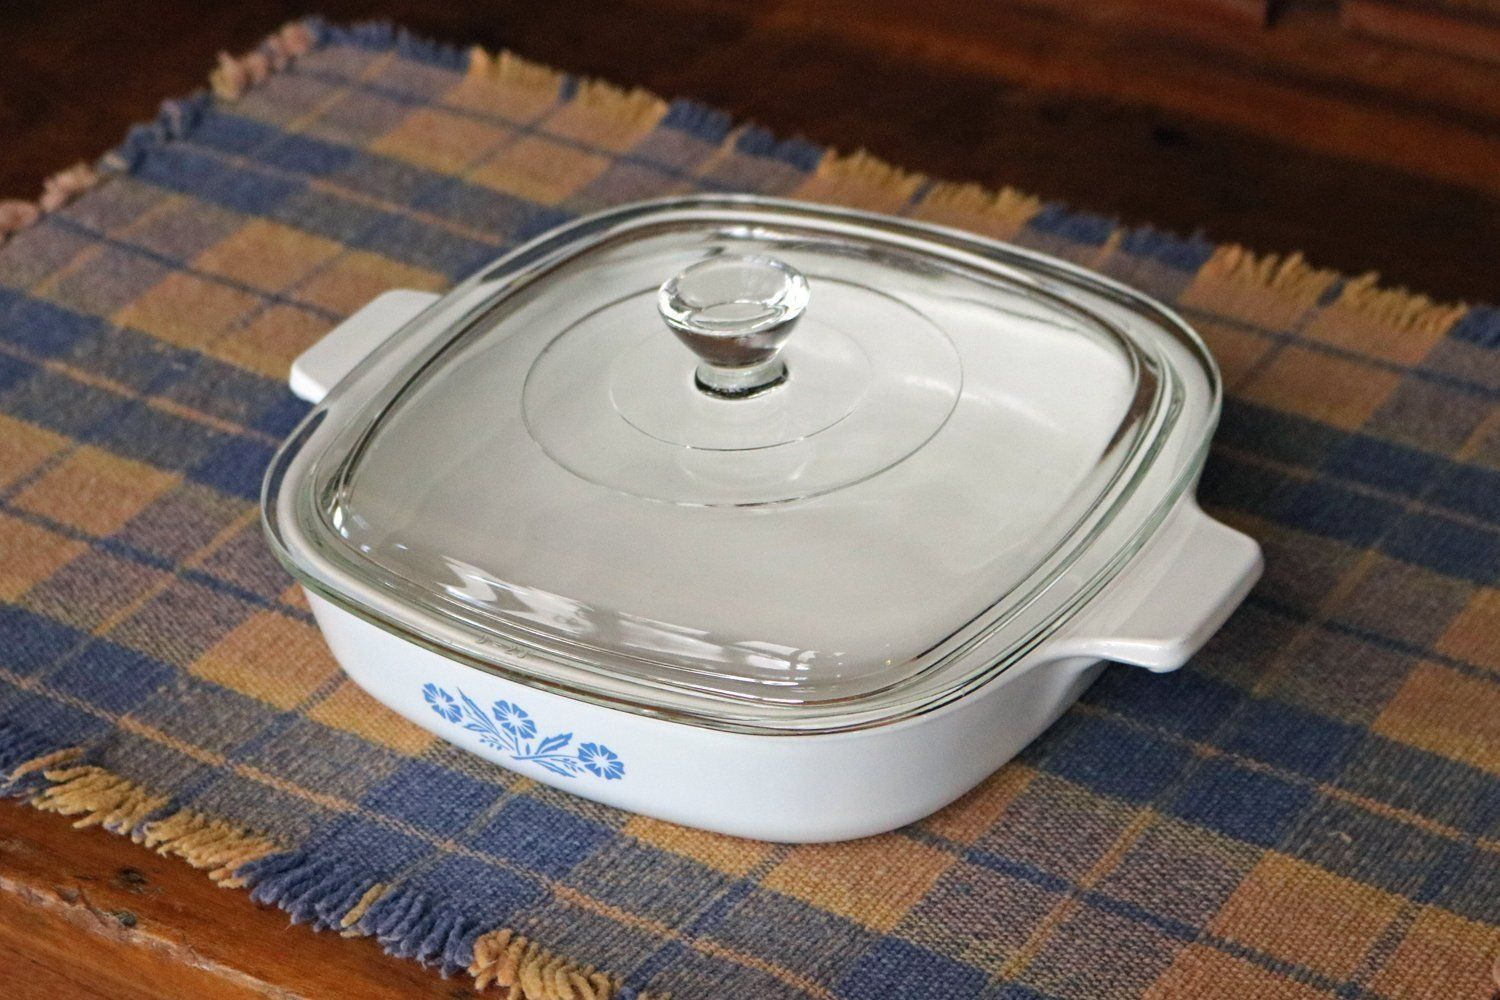 One 1 Qt Corning Ware Saucepan With Clear Pyrex Lid Blue Cornflower 1960s Sauce Pan P 7 B Skillet Pyrex Lids Baked Dishes Slow Cooker Crock Pot